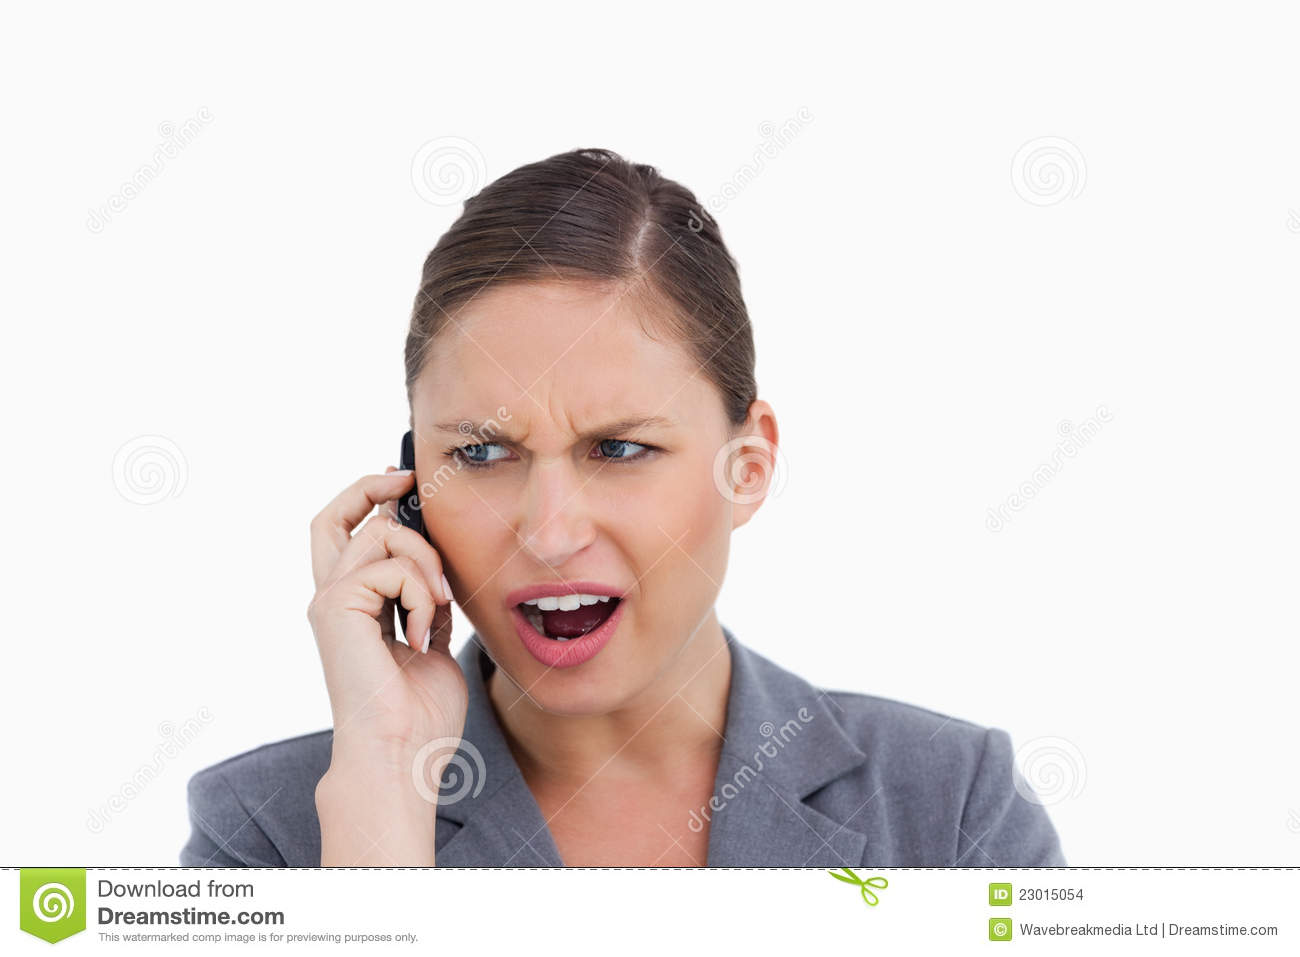 how to stop people calling from no caller id